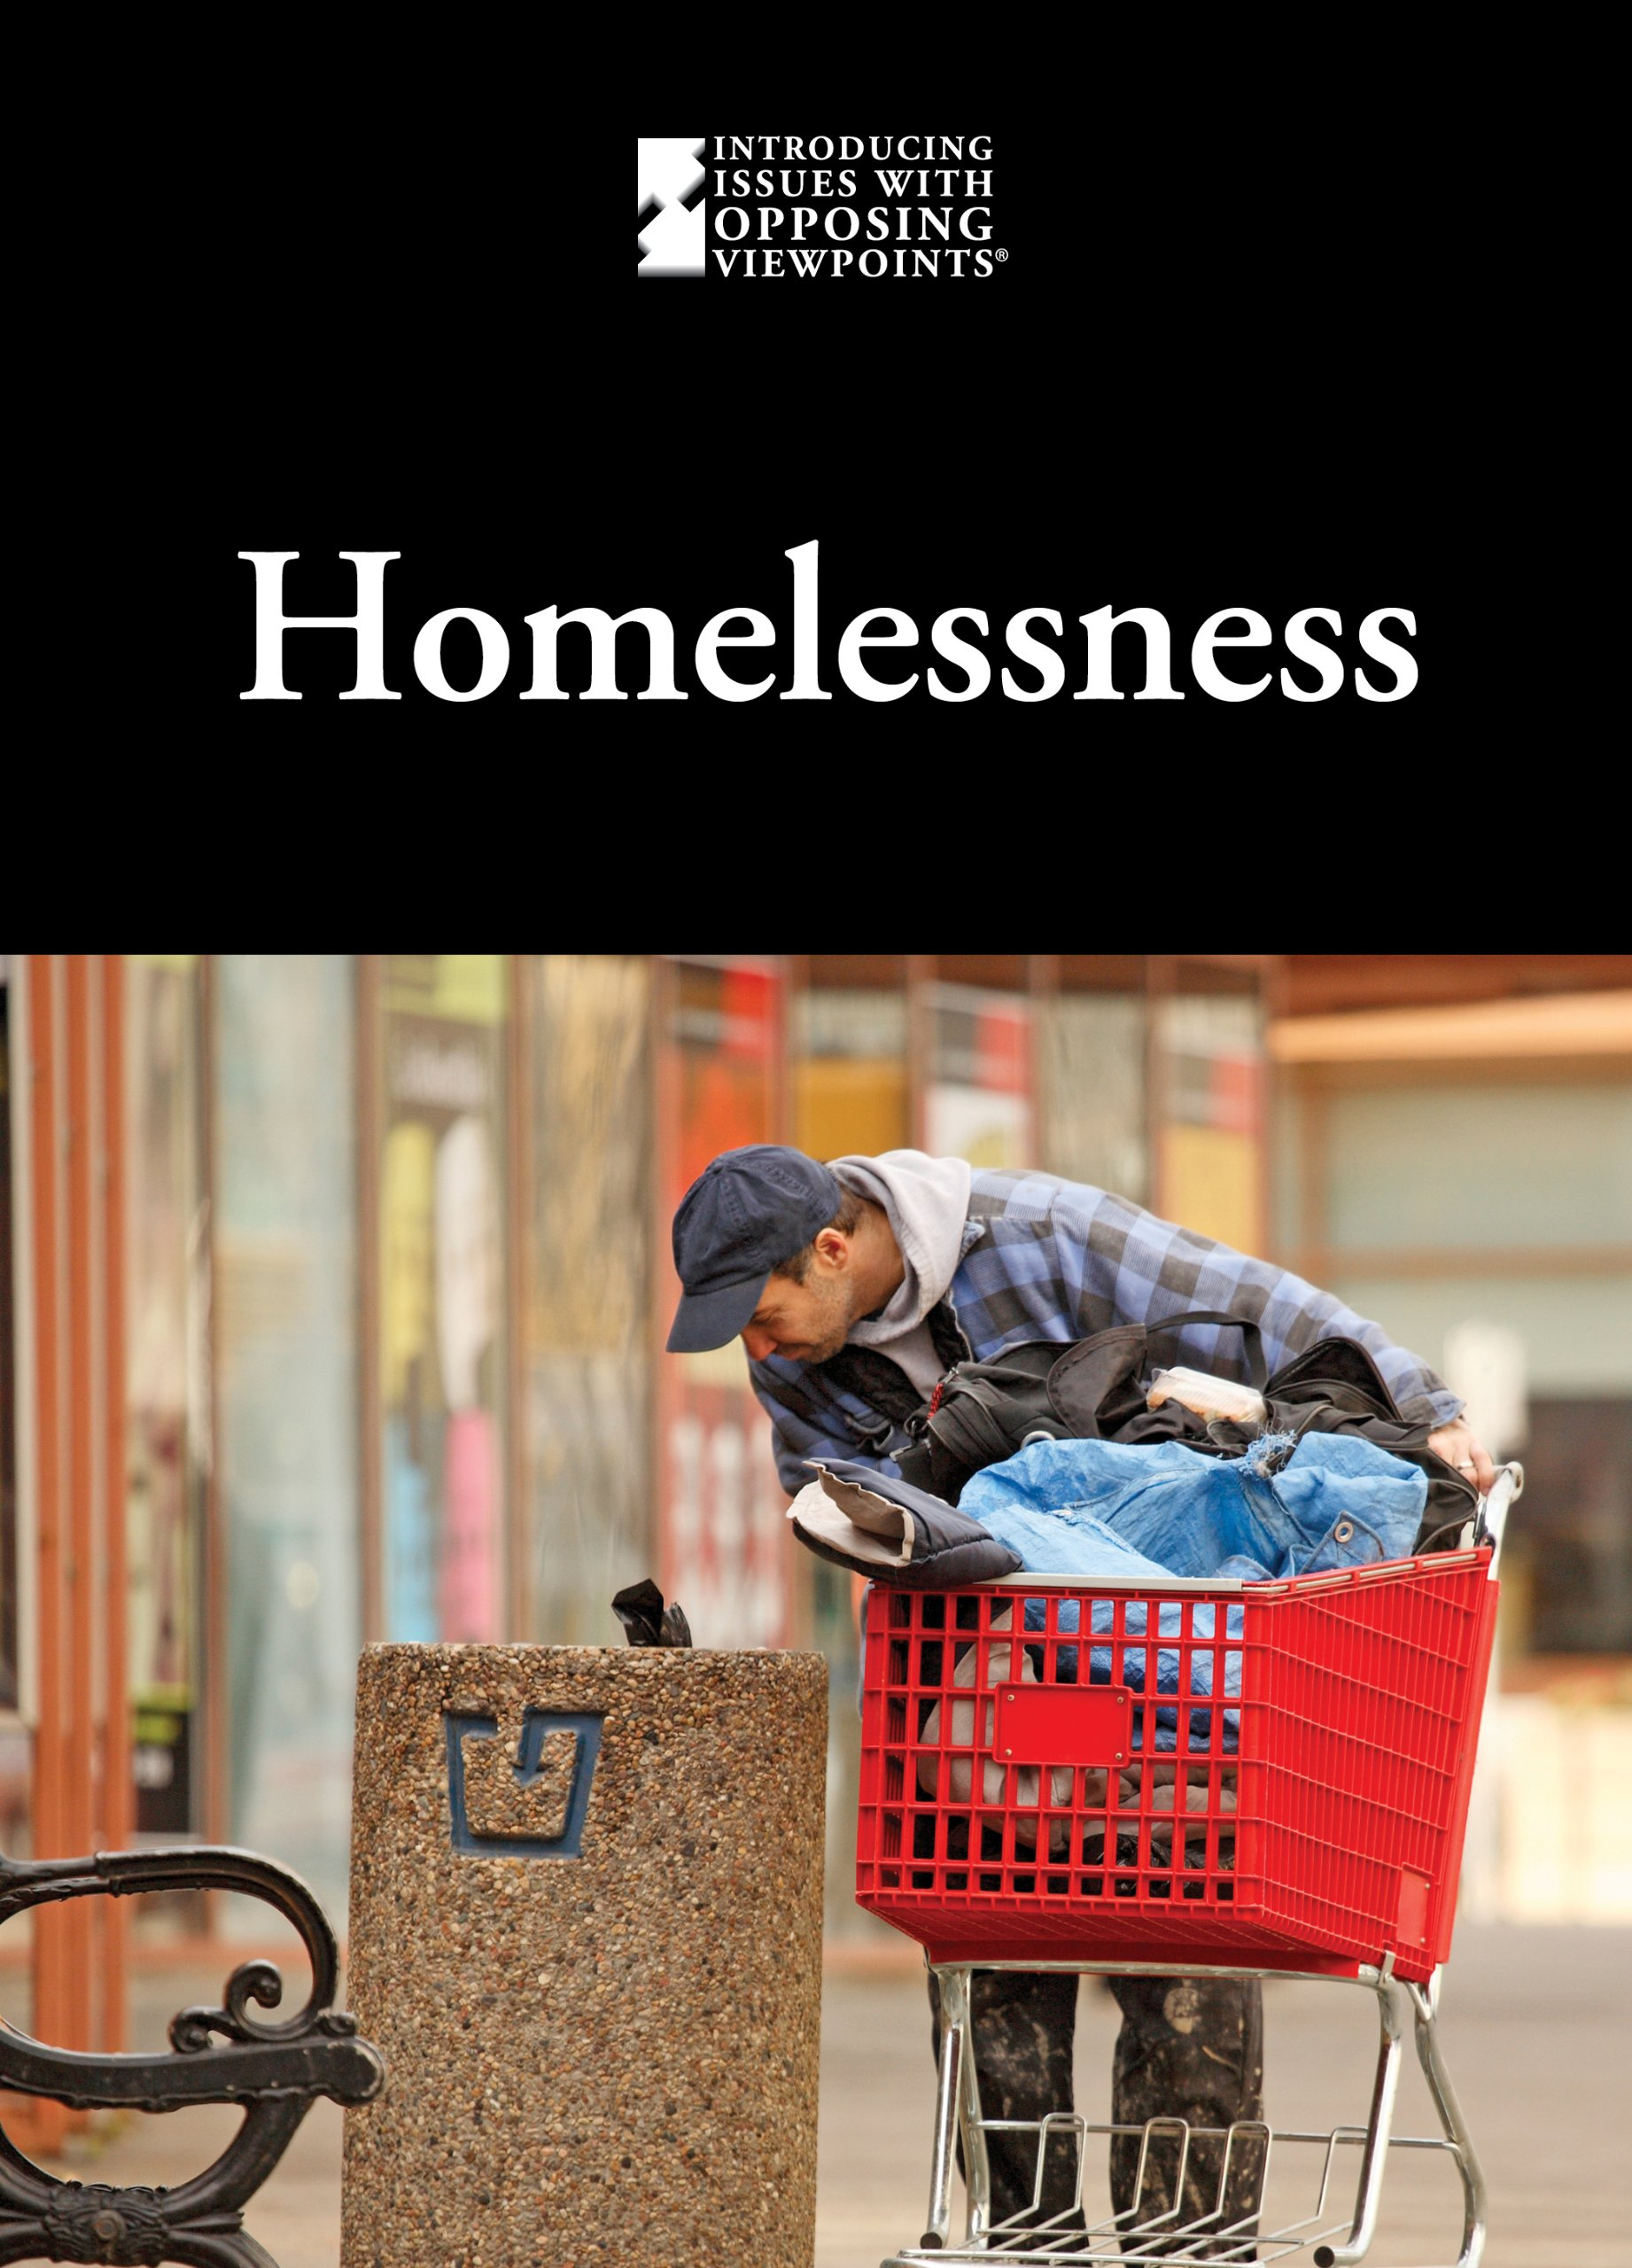 Homelessness (Introducing Issues With Opposing Viewpoints) PDF